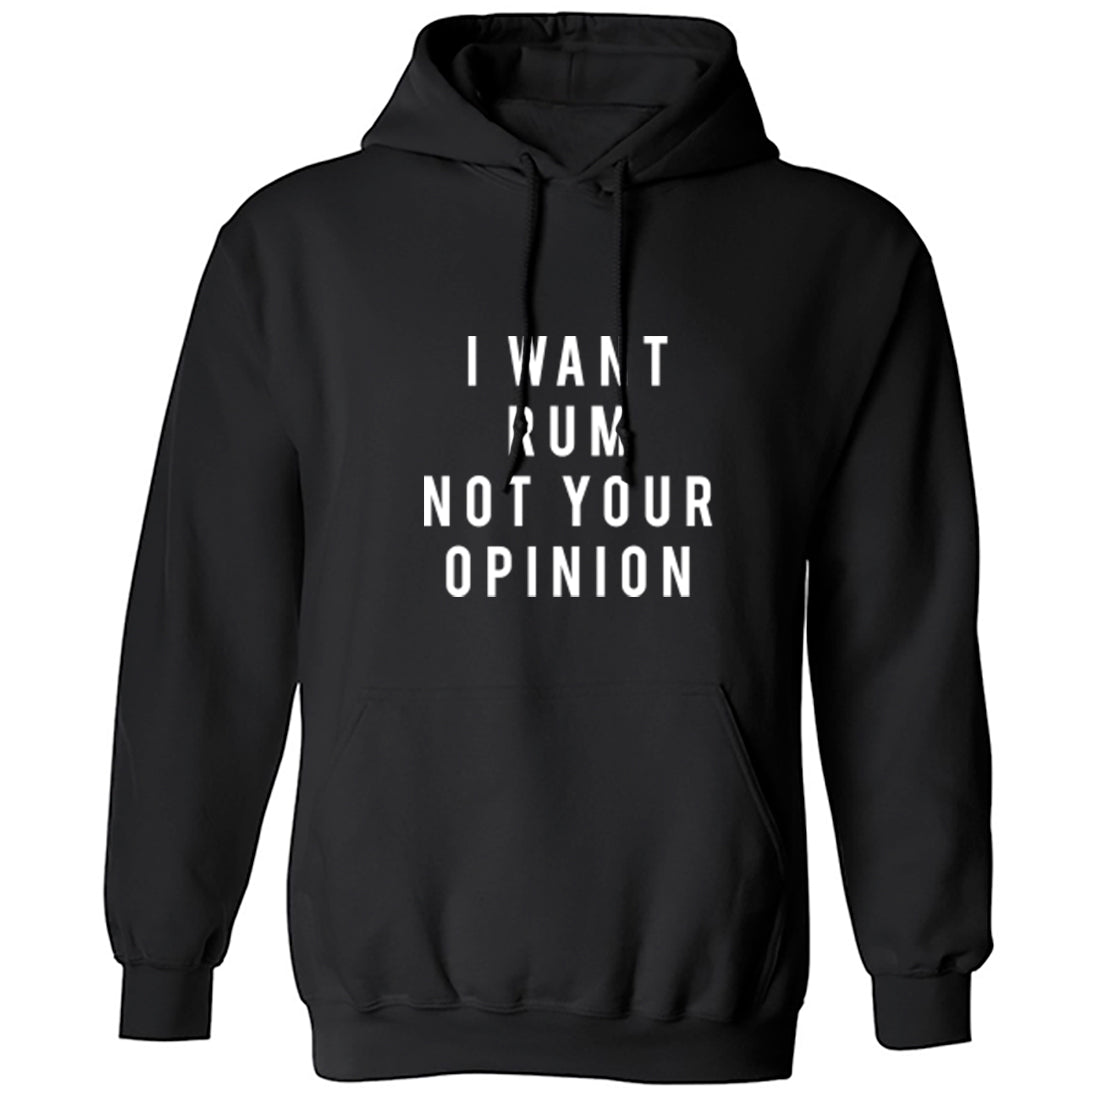 I Want Rum Not Your Opinion Unisex Hoodie K2178 - Illustrated Identity Ltd.